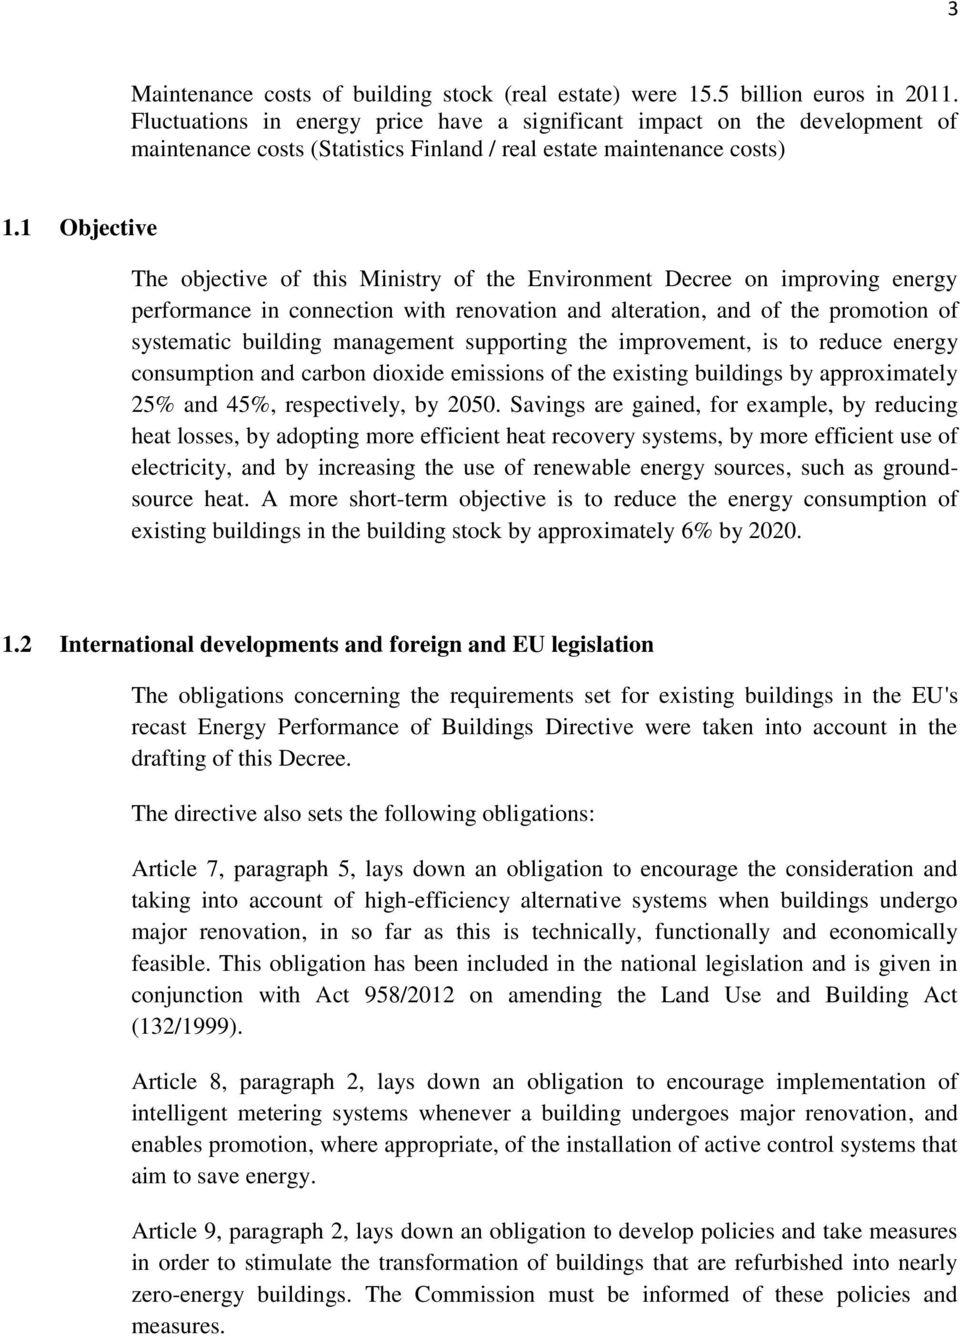 1 Objective The objective of this Ministry of the Environment Decree on improving energy performance in connection with renovation and alteration, and of the promotion of systematic building